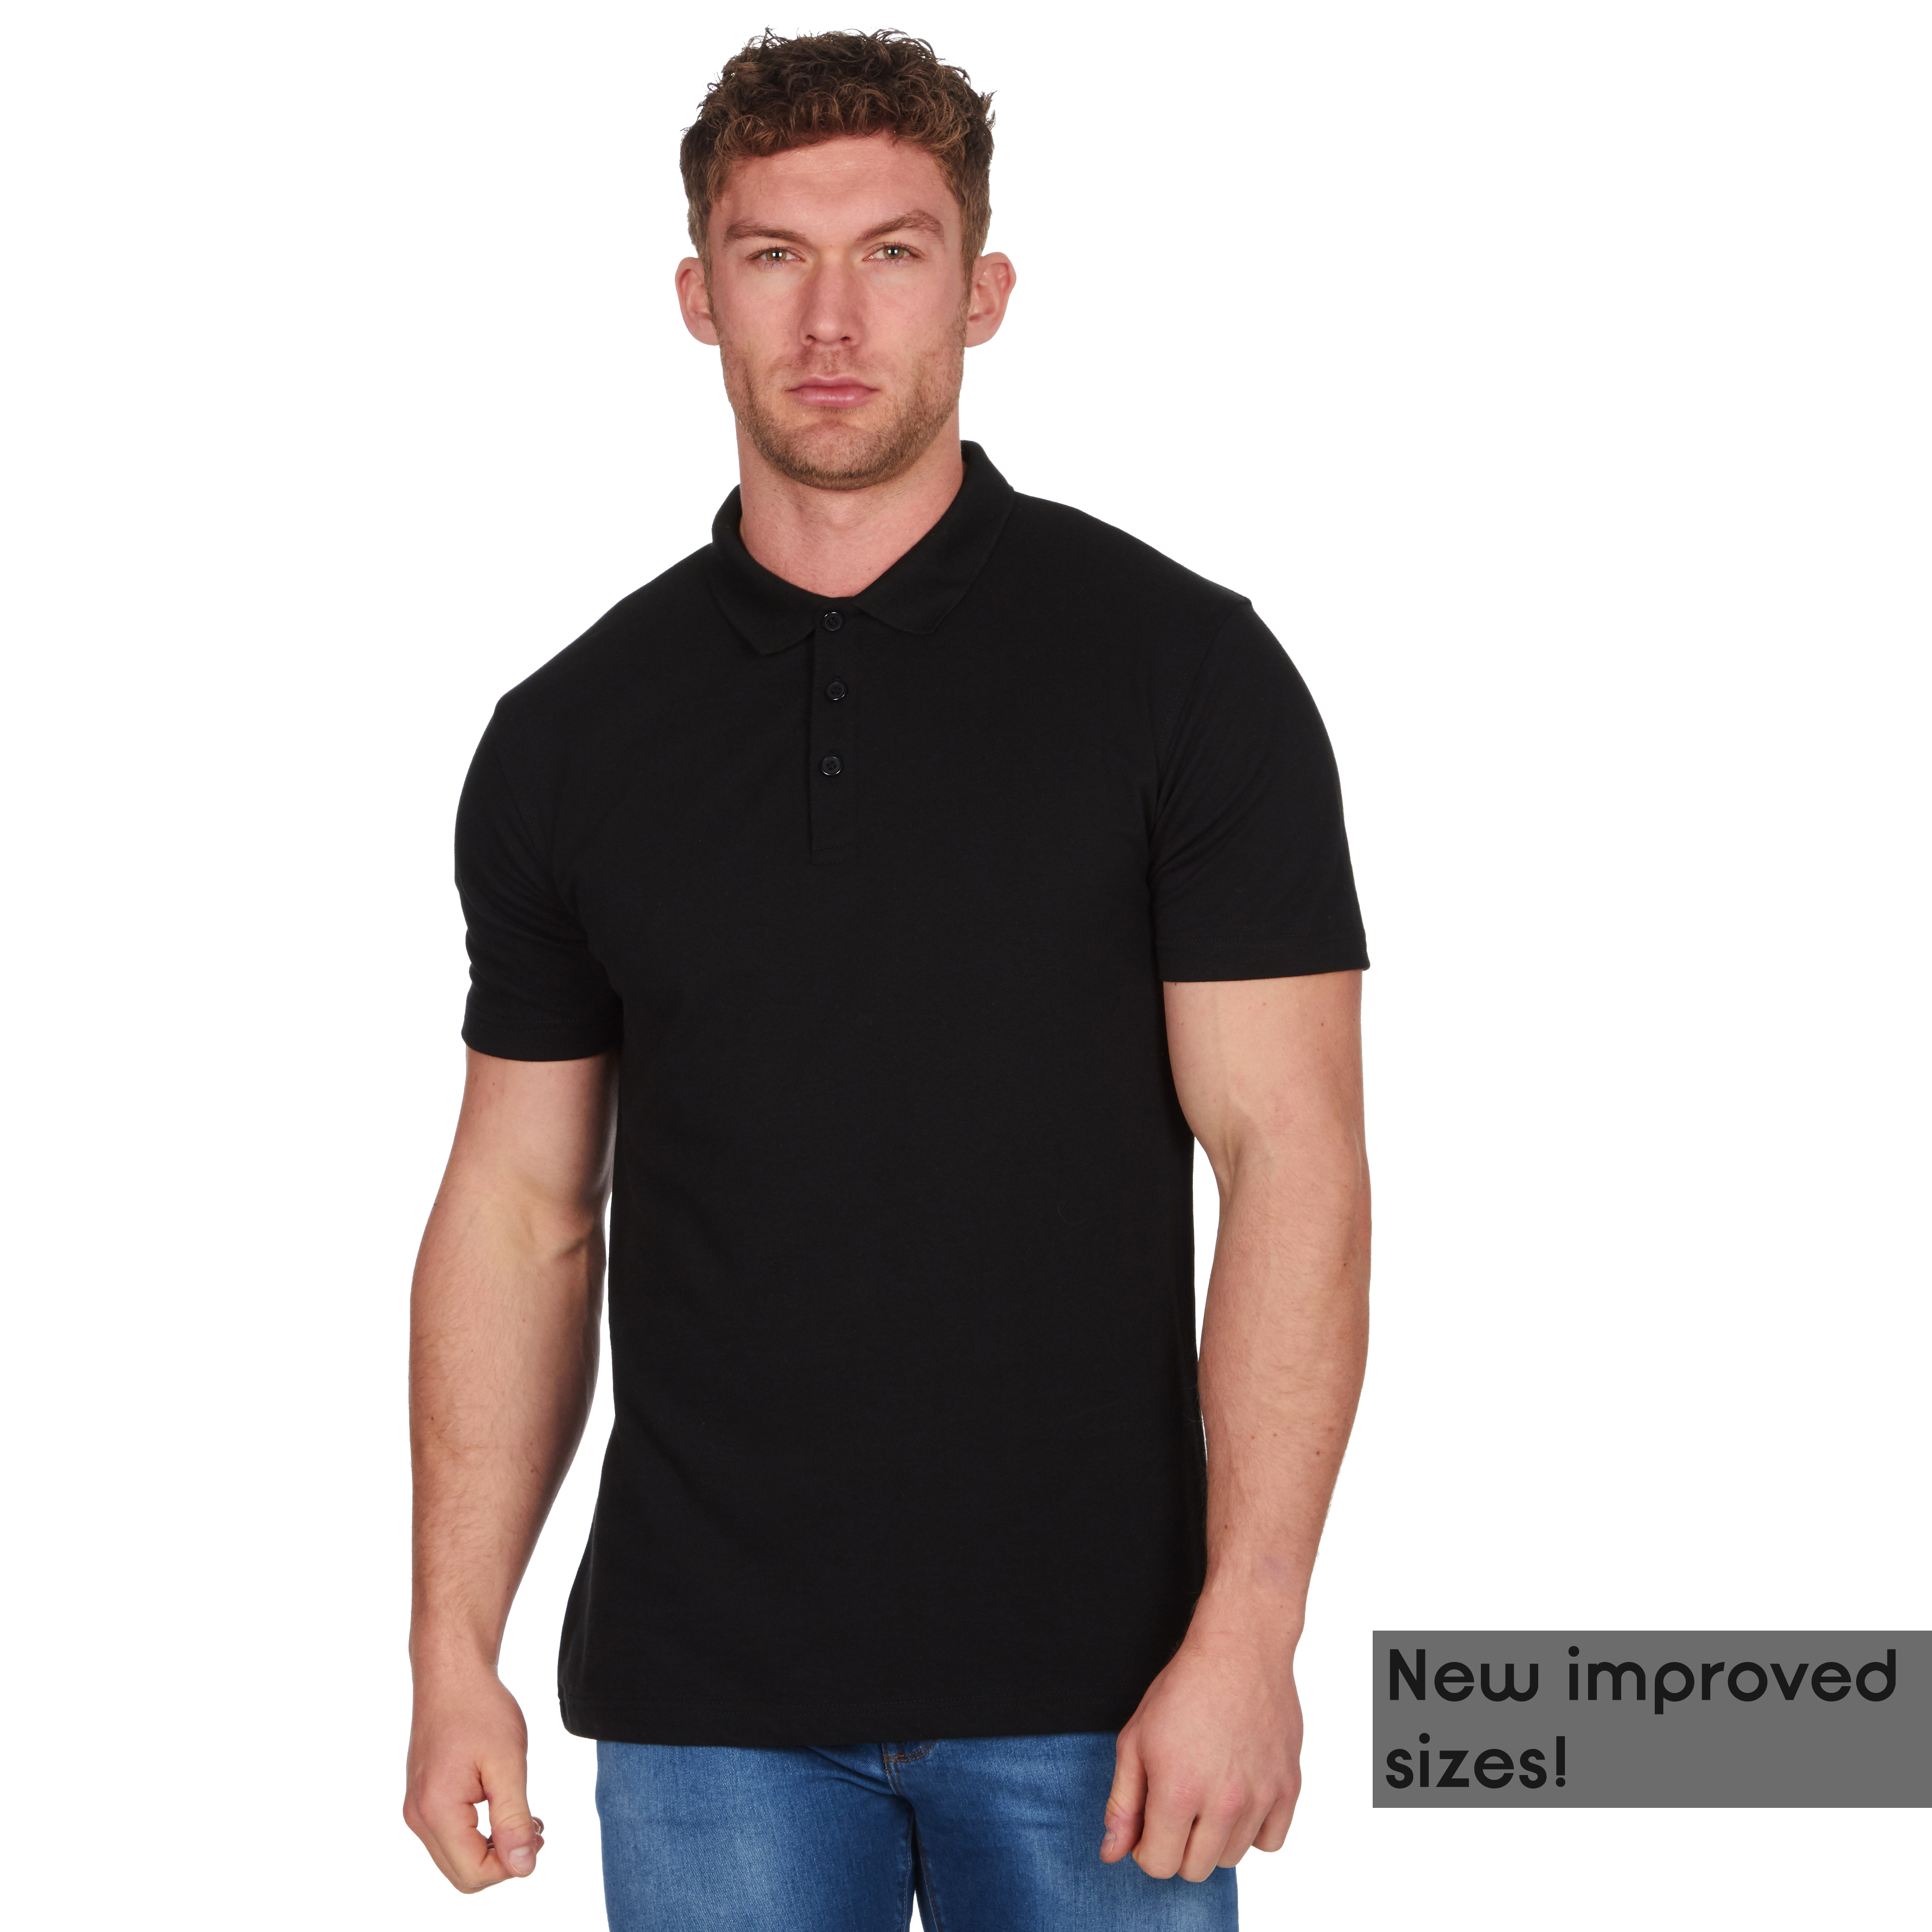 Mens-Classic-Polo-Top-Plus-Size-T-Shirt-Plain-Shirt-Big-And-Tall-Short-Sleeve thumbnail 3